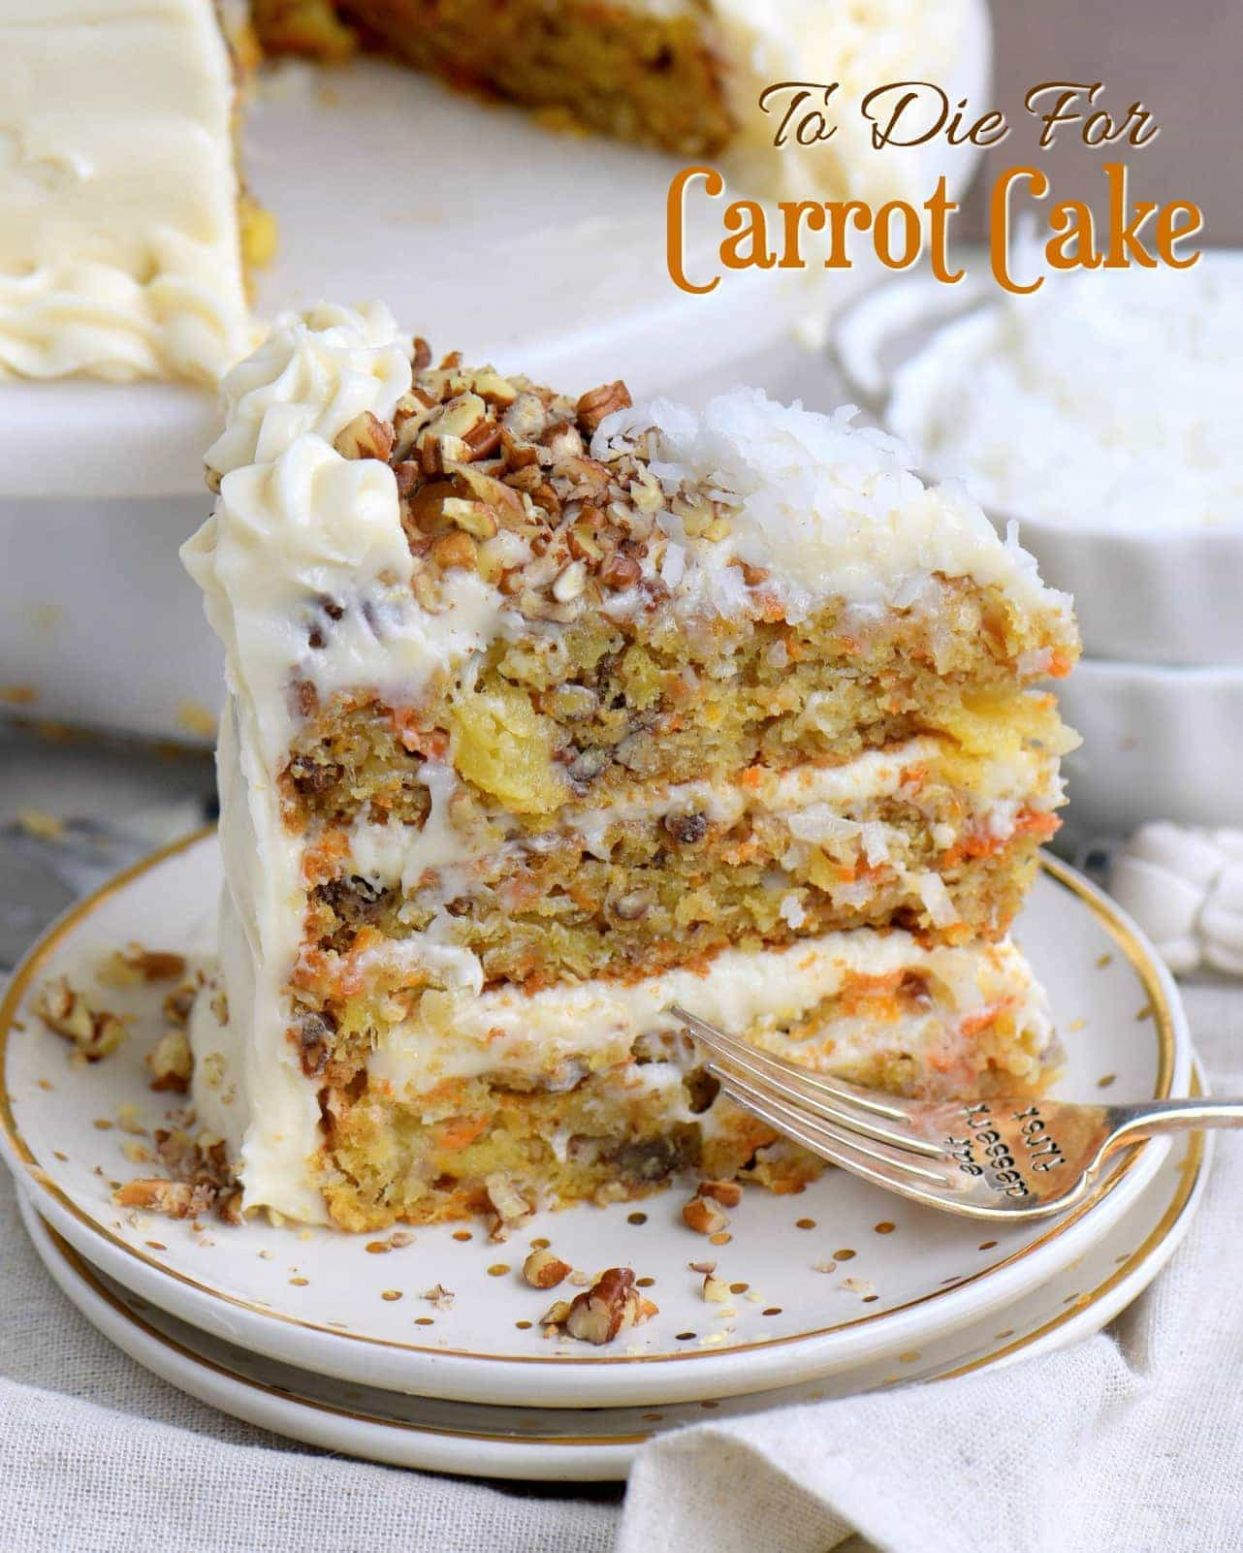 To Die For Carrot Cake - Recipes Cakes From Scratch